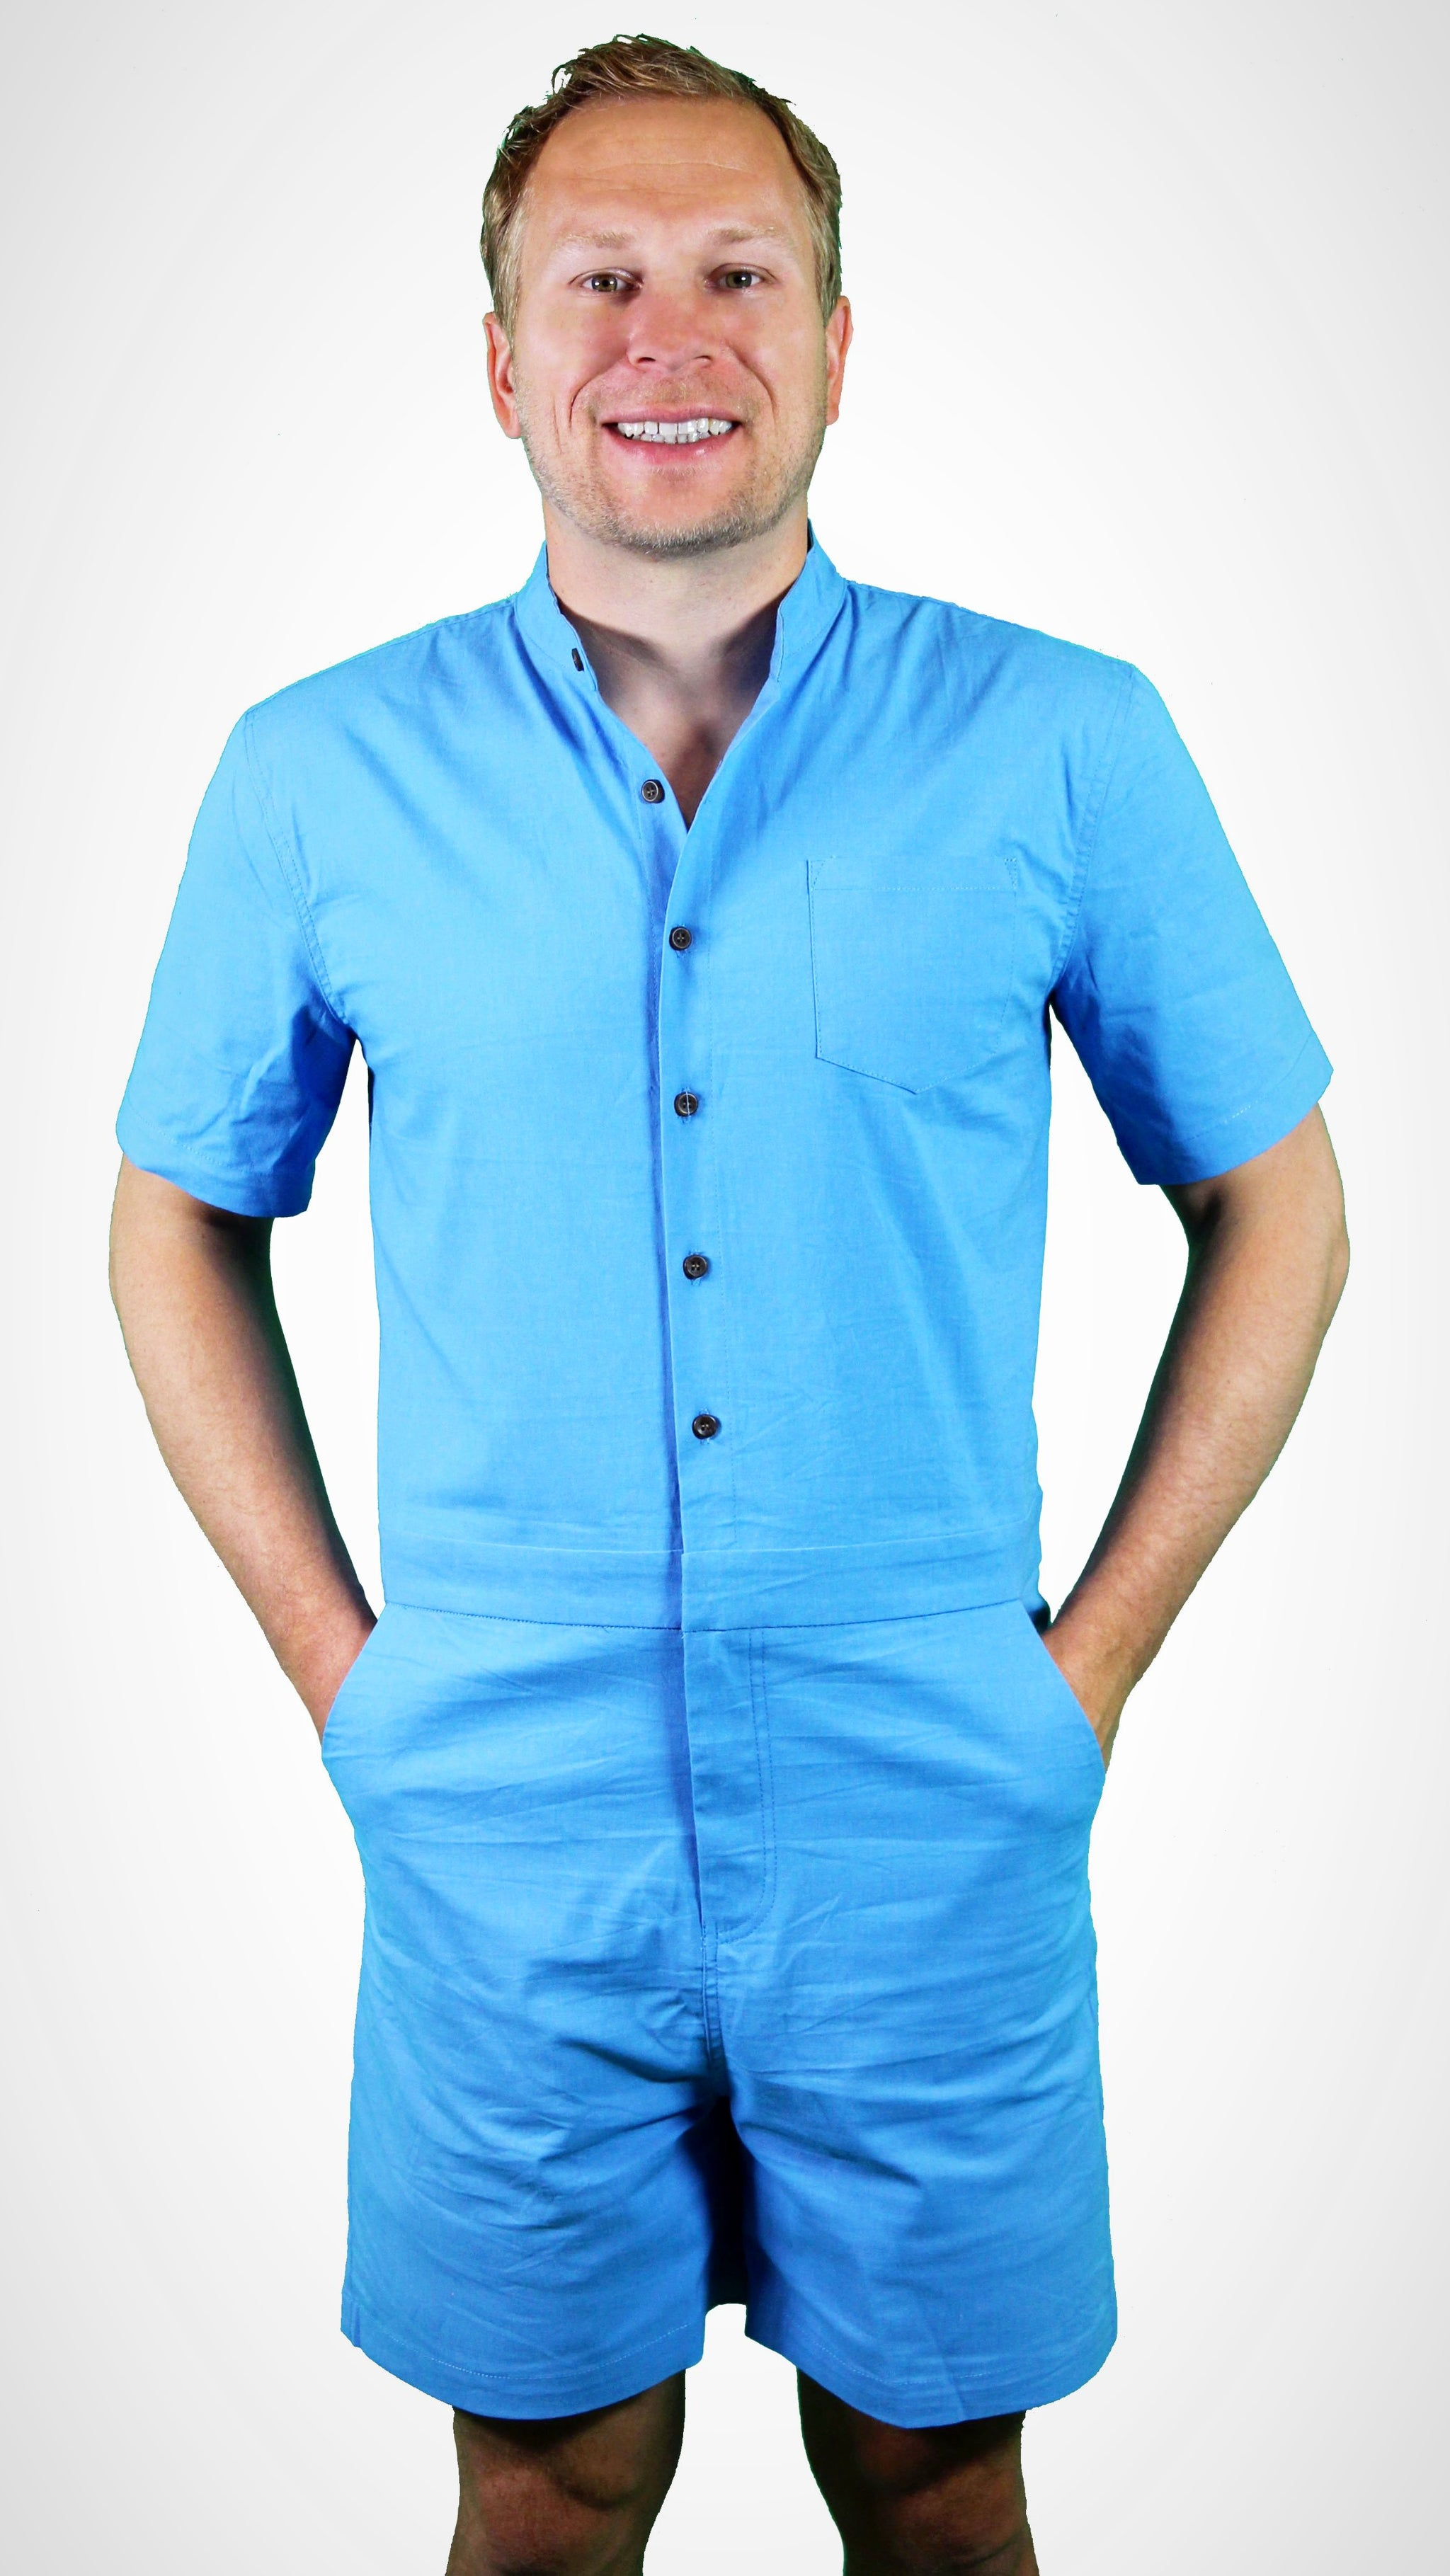 016e08f3d3d BLUE MALE ROMPER BY CHARLIE ROMPER - charlieromper